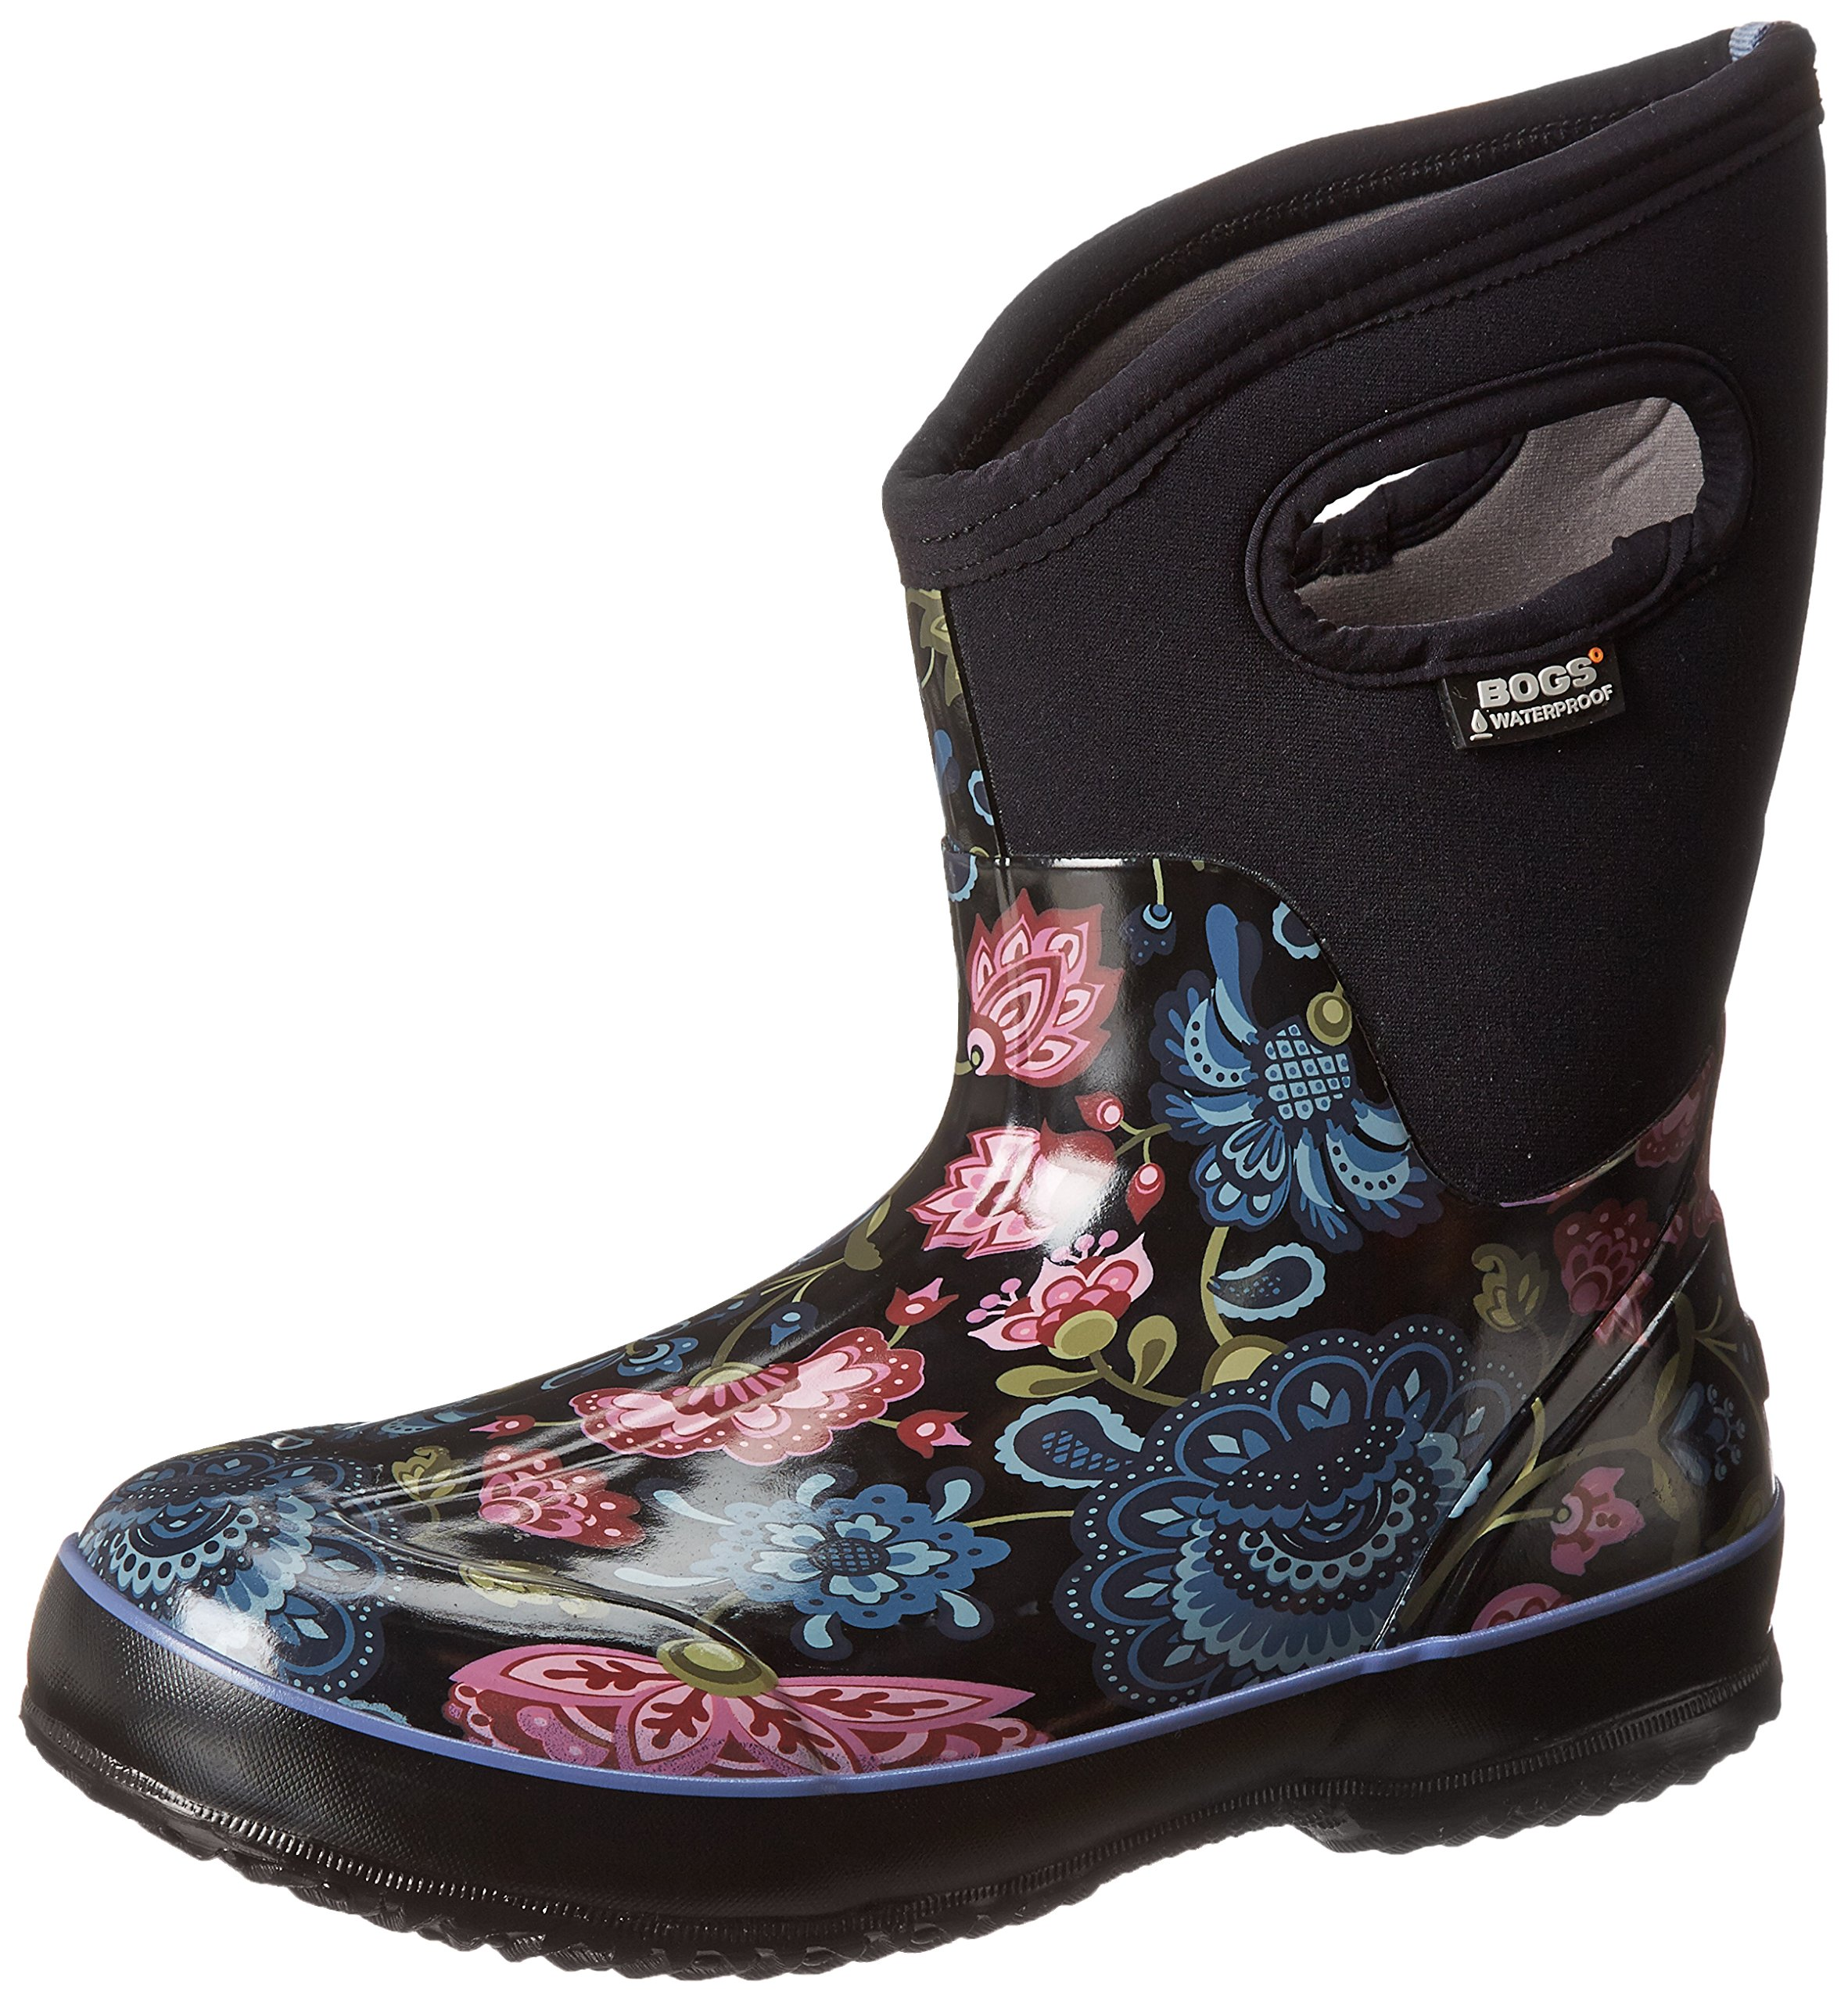 Bogs Women's Classic Mid Winter Blooms Waterproof Insulated Boot, Black Multi,9 M US